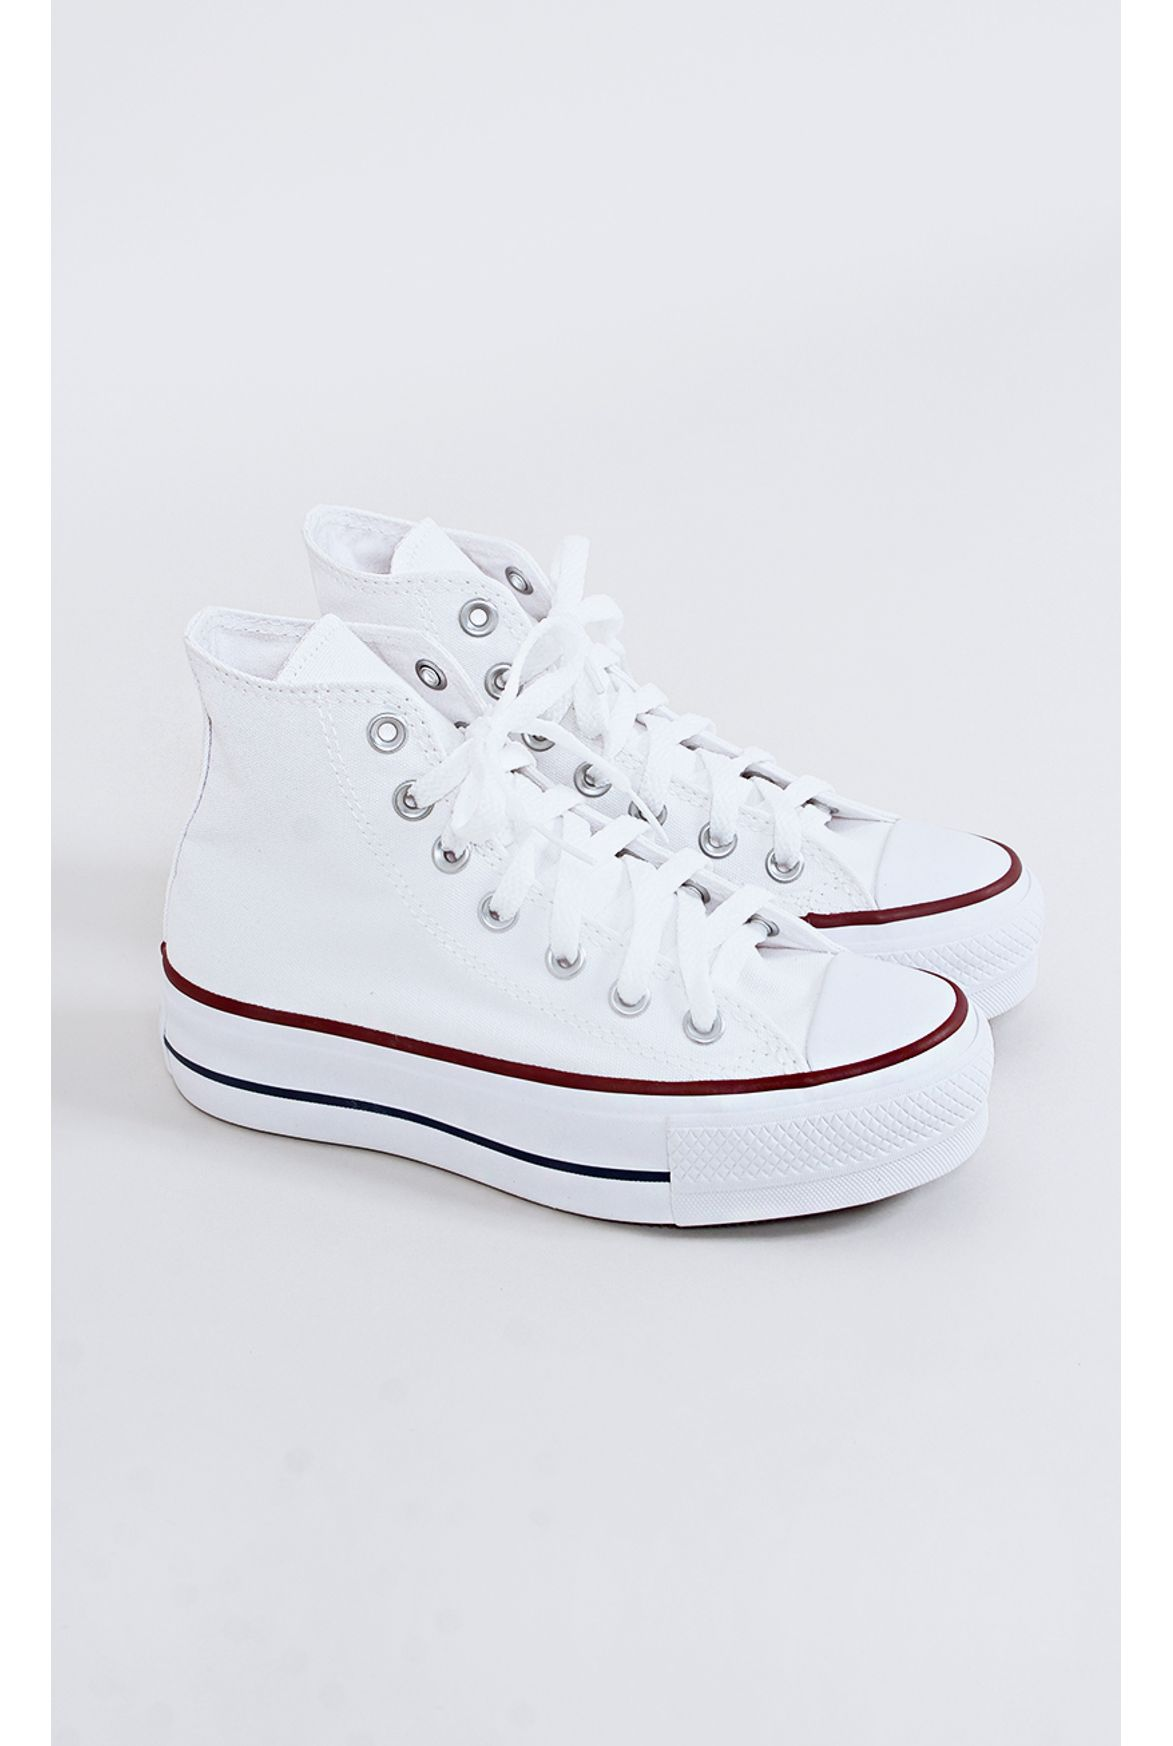 a4b0697136 FSHN tênis all star converse flatform branco - Fashion Closet